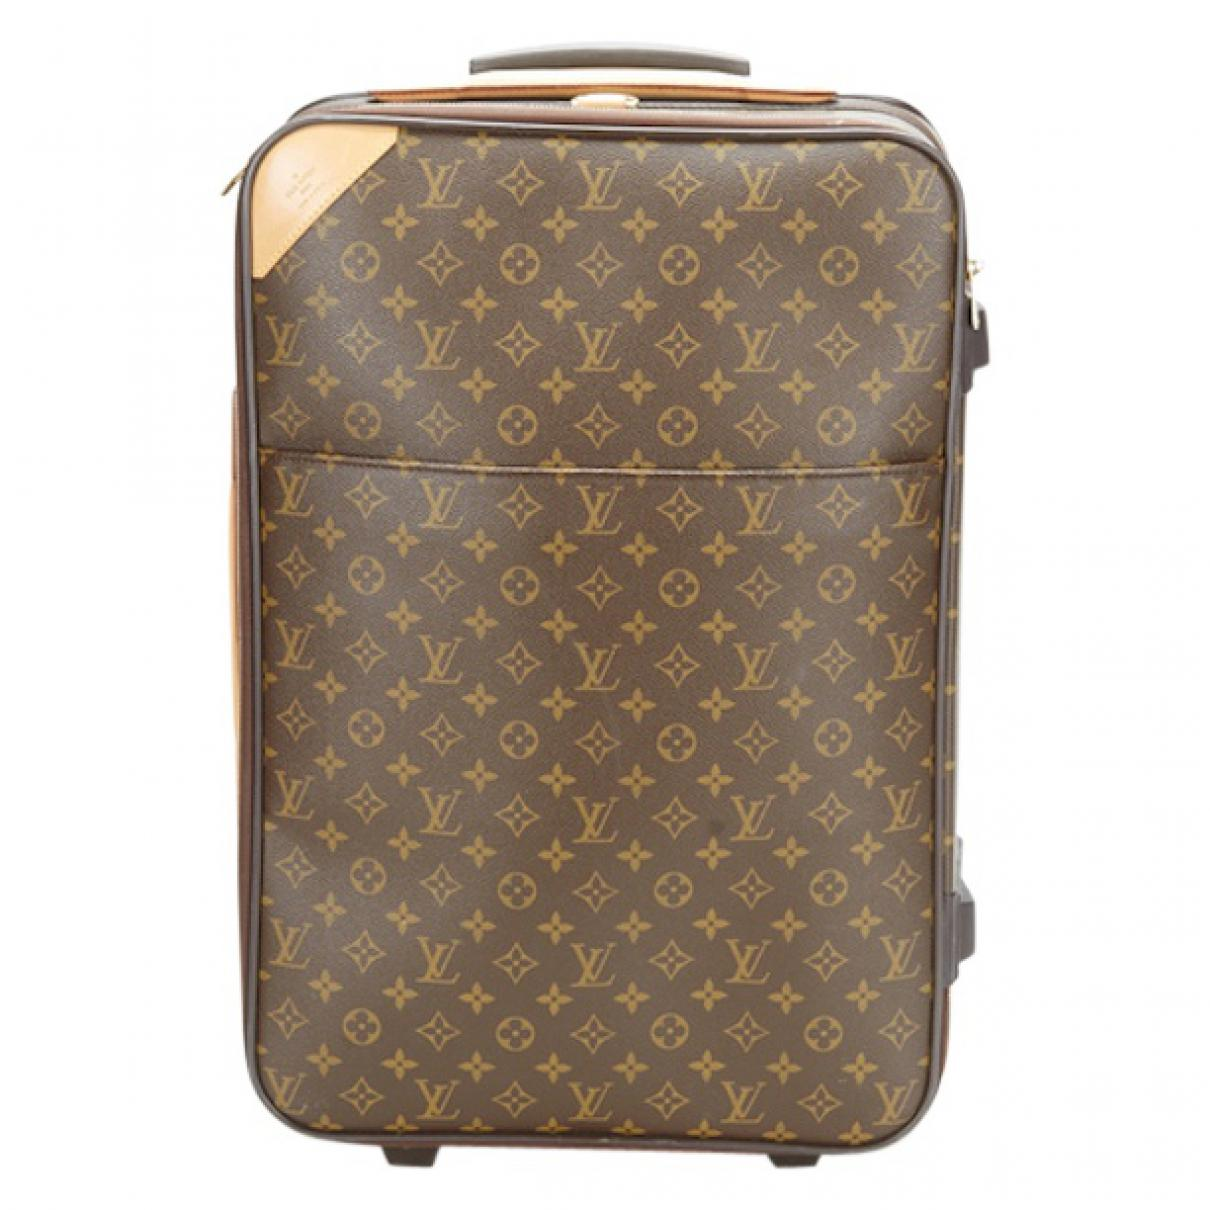 Pre-owned - Pegase cloth travel bag Louis Vuitton